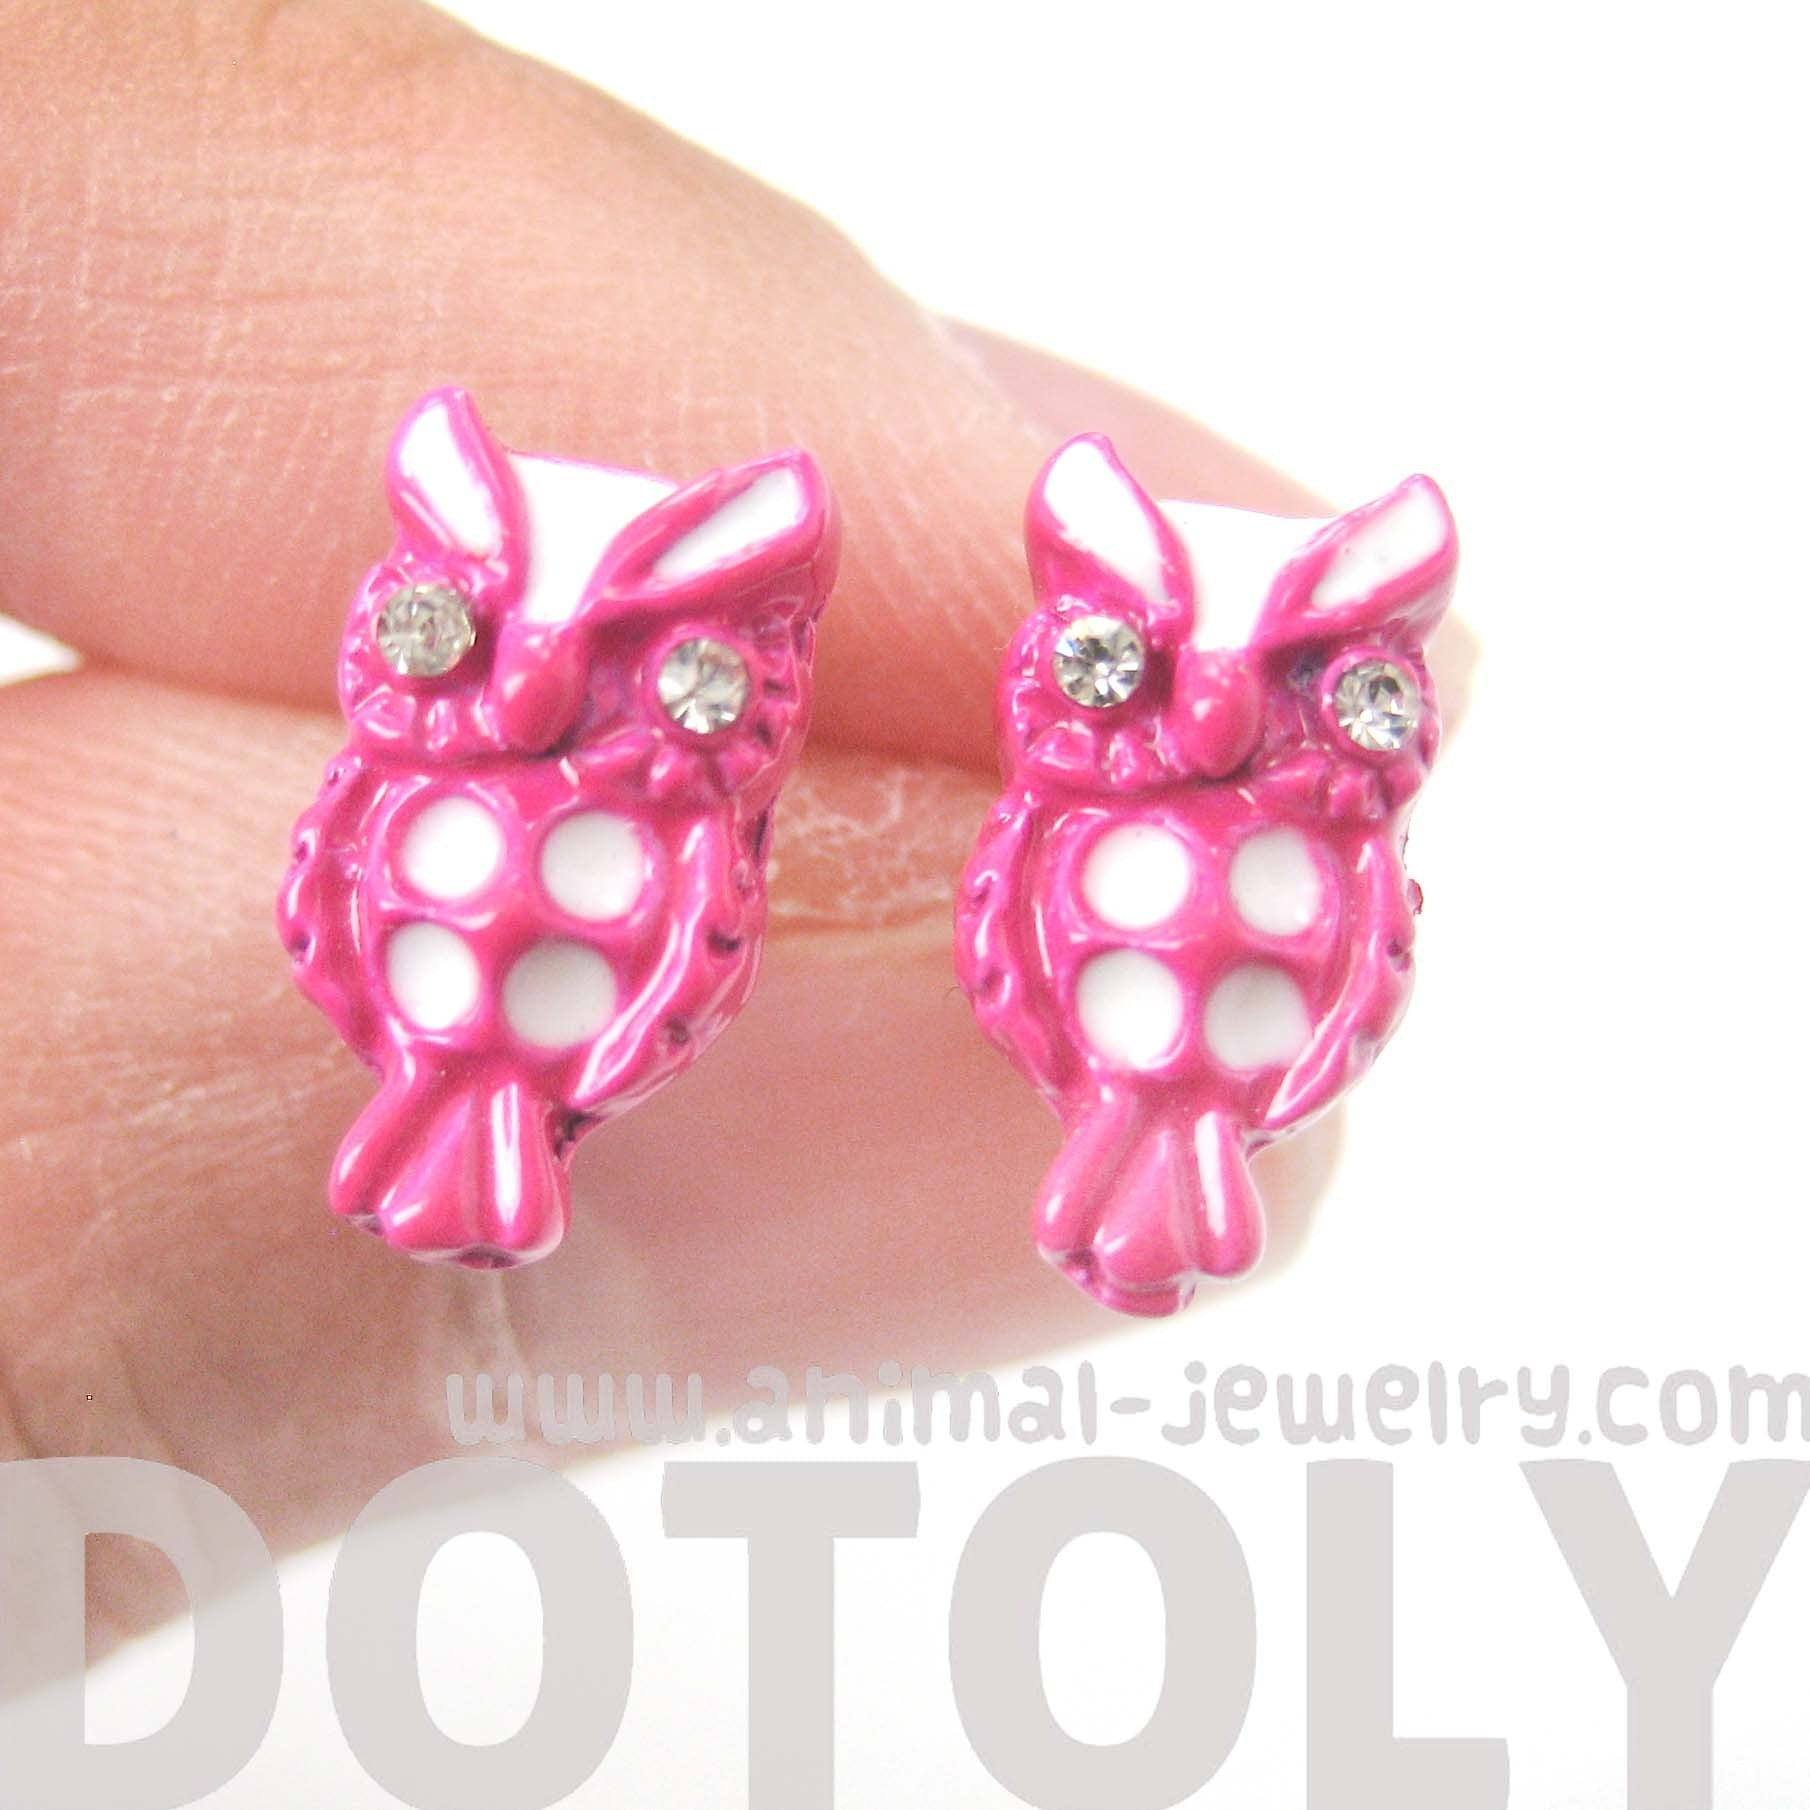 owl-bird-shaped-stud-earrings-in-pink-and-white-animal-jewelry